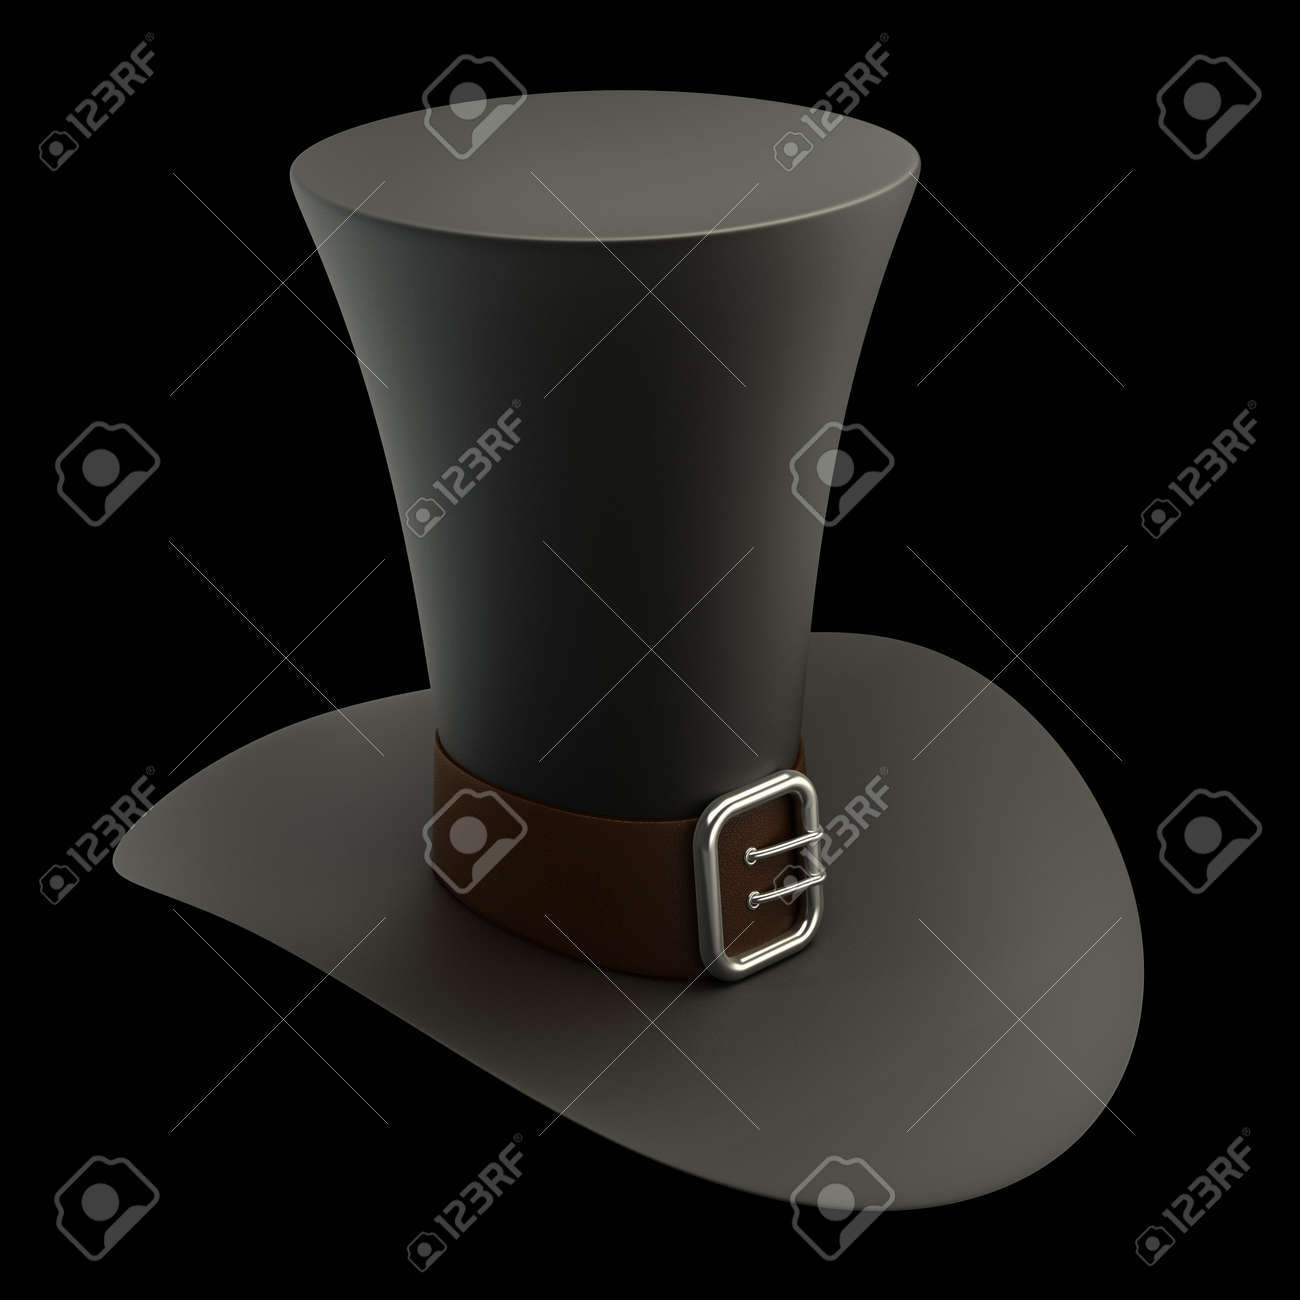 Black top hat with gray strip isolated on black background High resolution 3D Stock Photo - 12980008